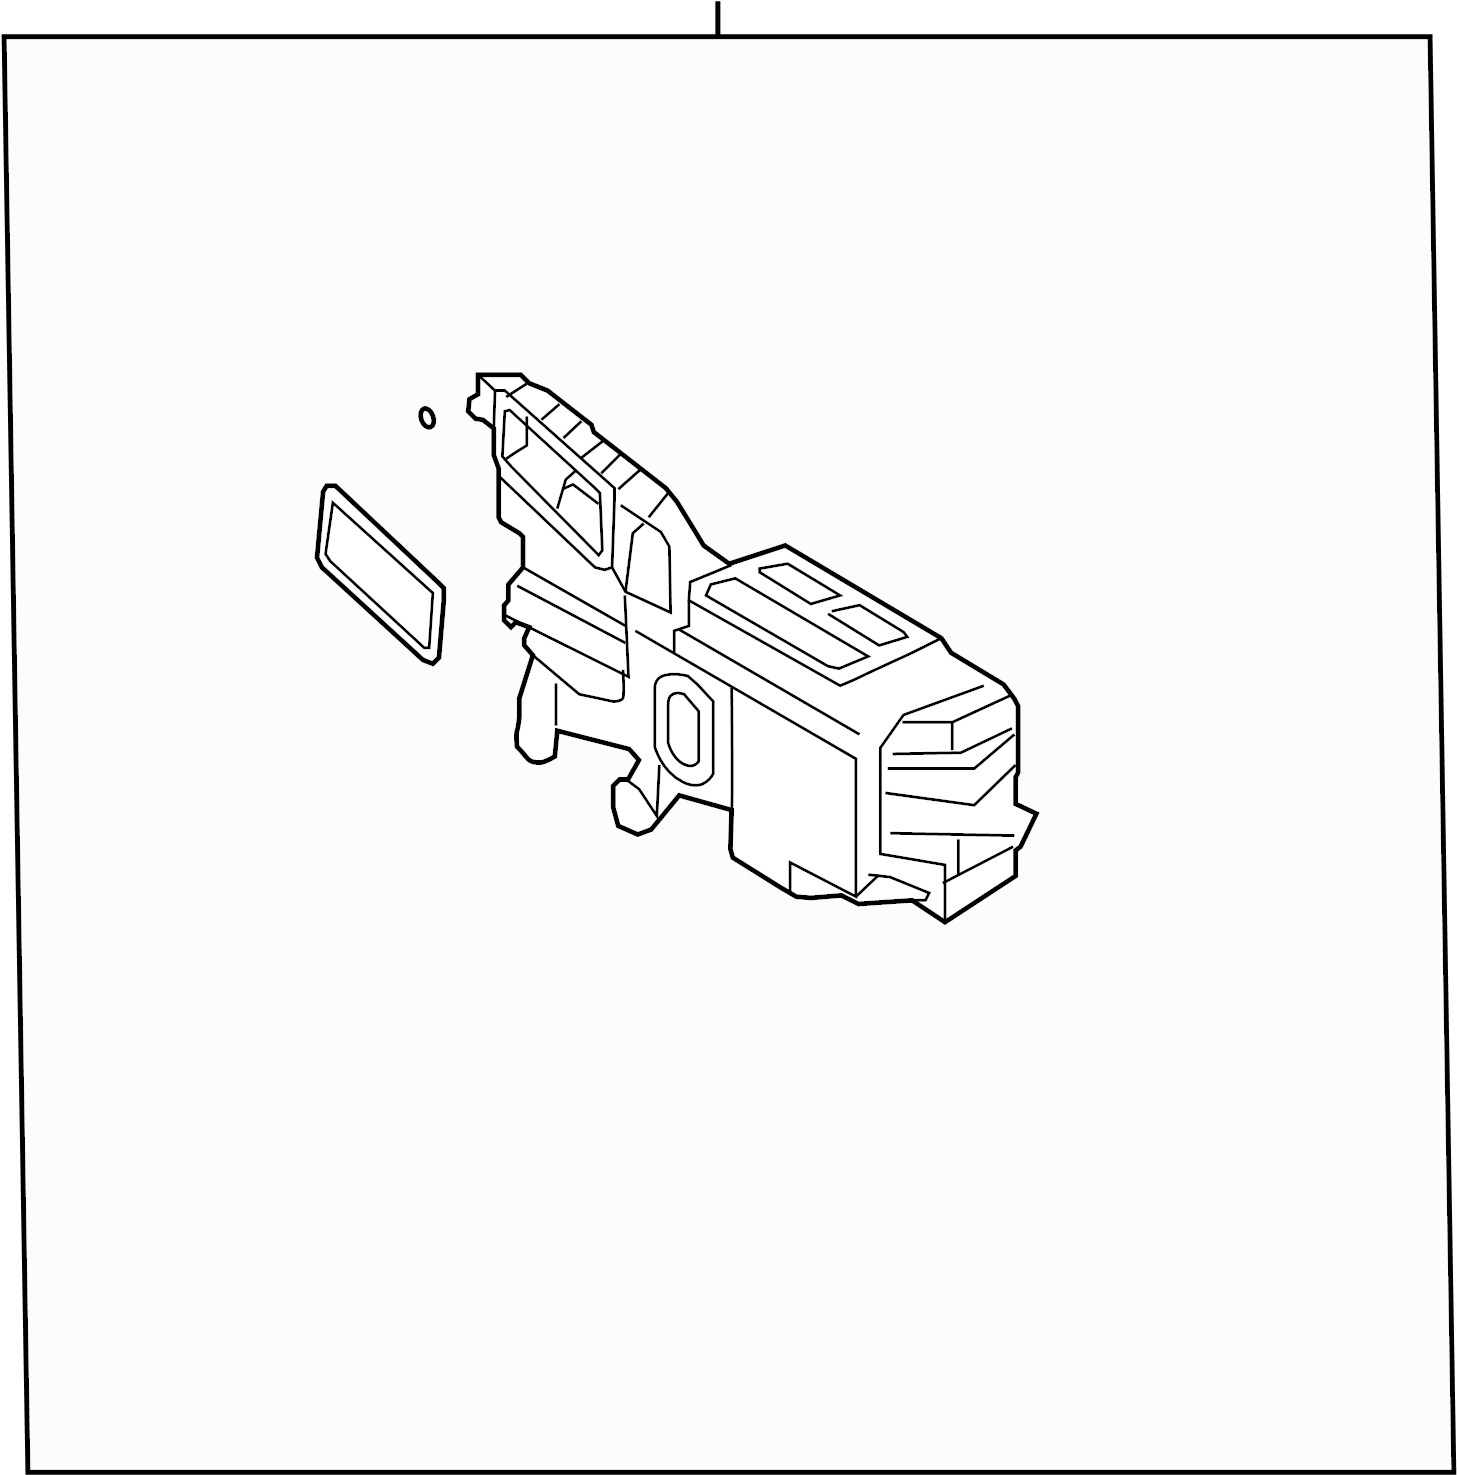 2007 mkx ac diagram 9t4z19b555g ford evaporator and housing assembly  9t4z19b555g ford evaporator and housing assembly